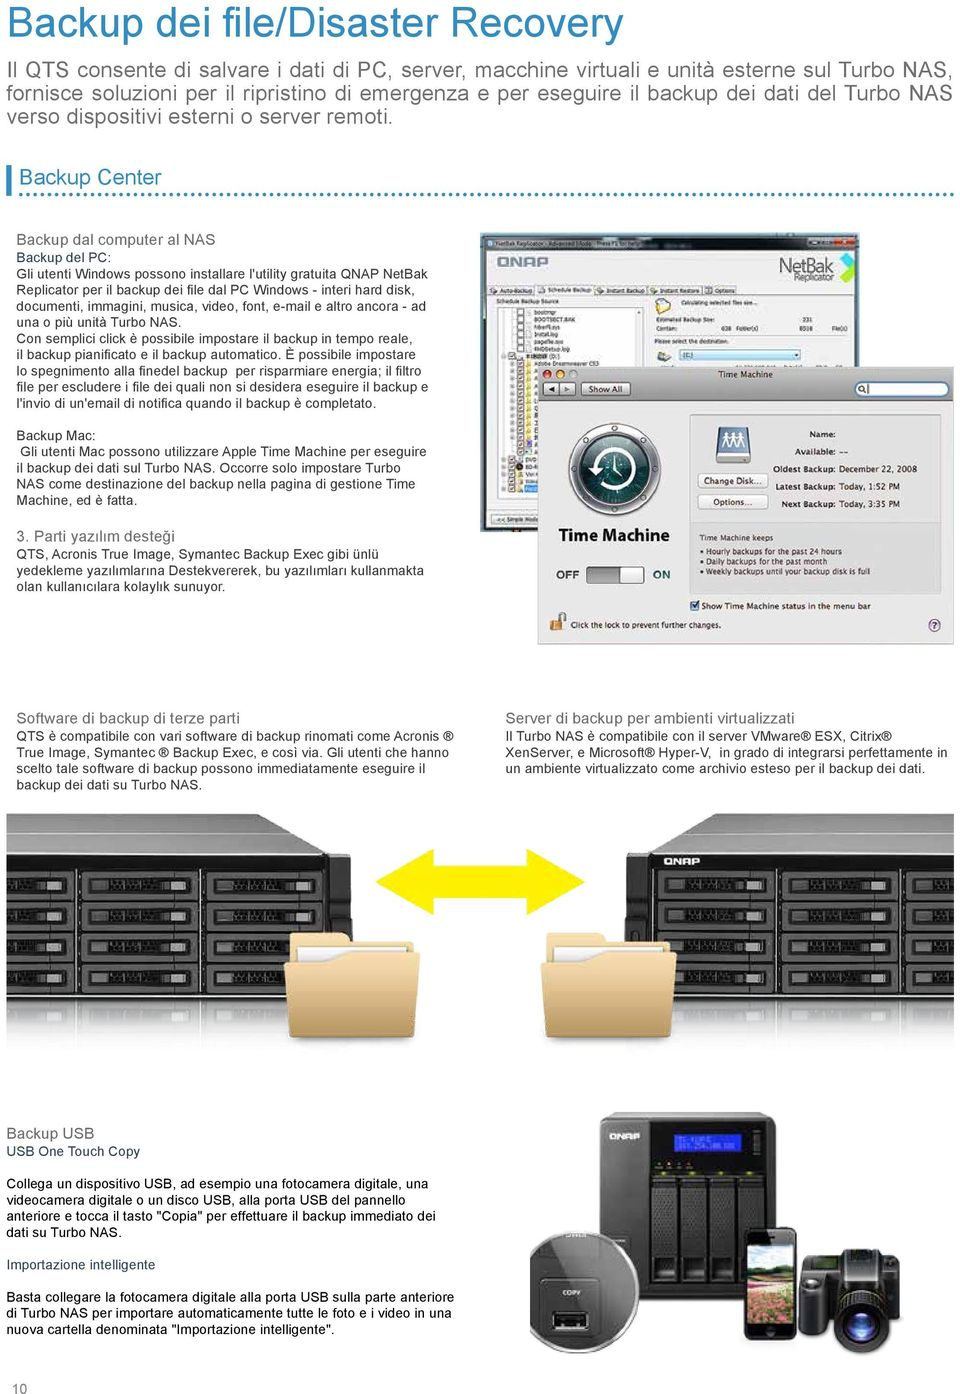 Backup Center Backup dal computer al NAS Backup del PC: Gli utenti Windows possono installare l'utility gratuita QNAP NetBak Replicator per il backup dei file dal PC Windows - interi hard disk,